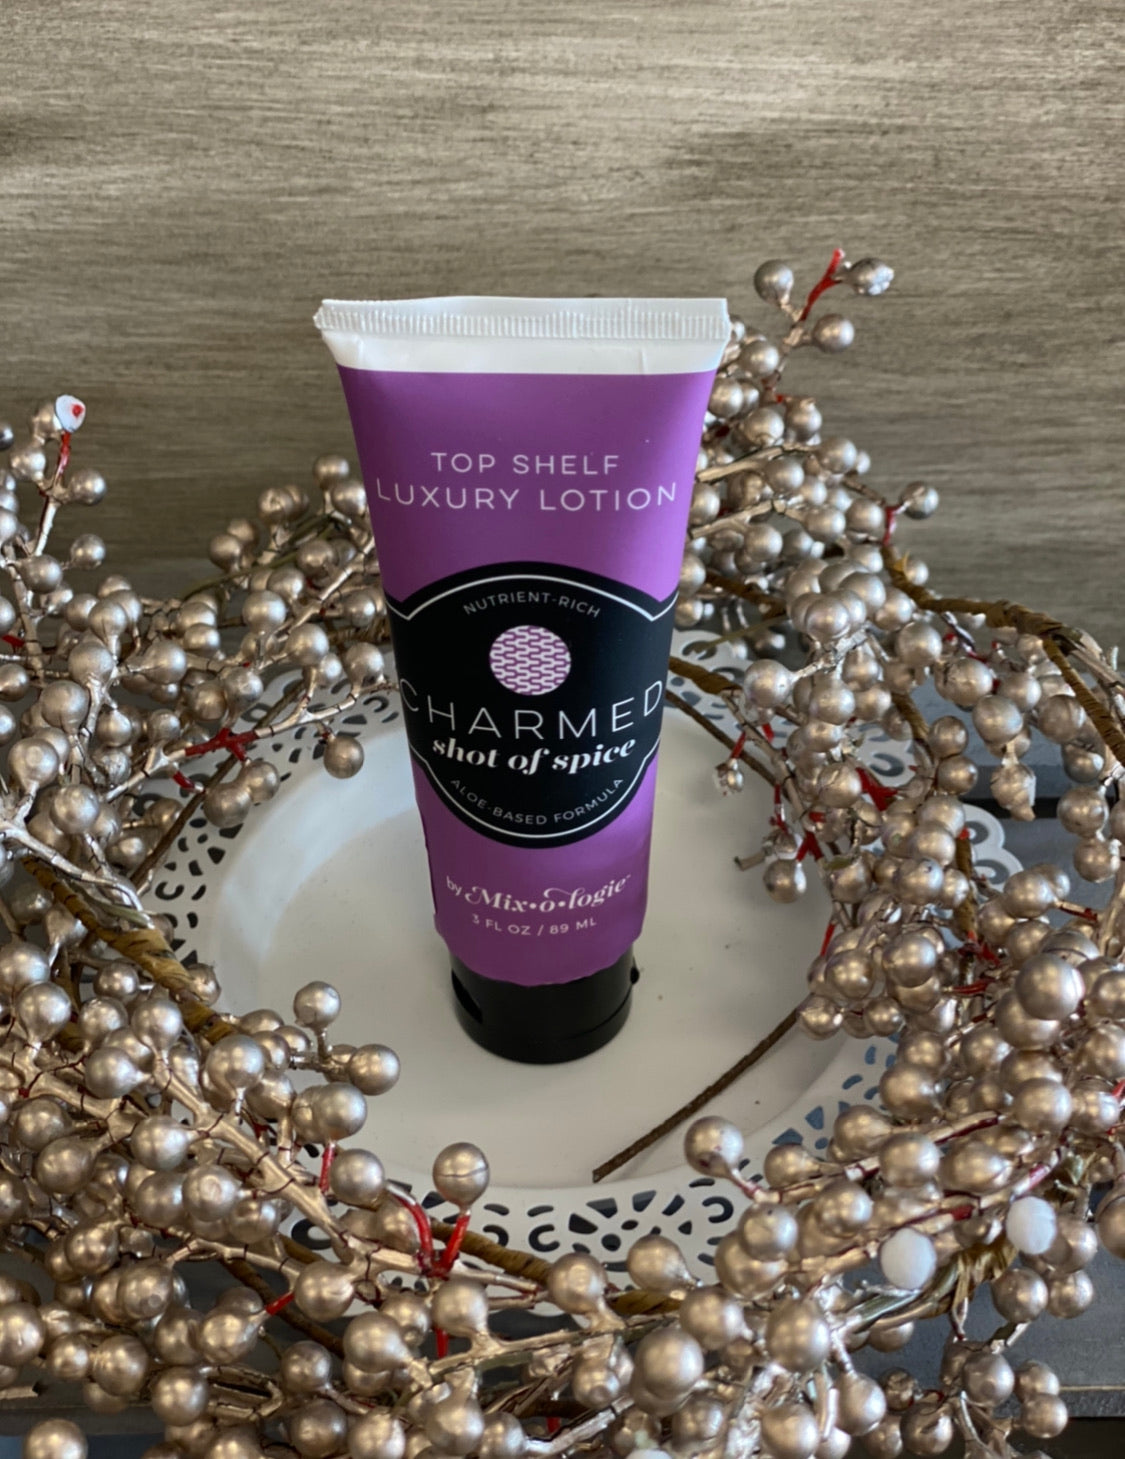 Luxury Lotion - Charmed (Shot of Spice)